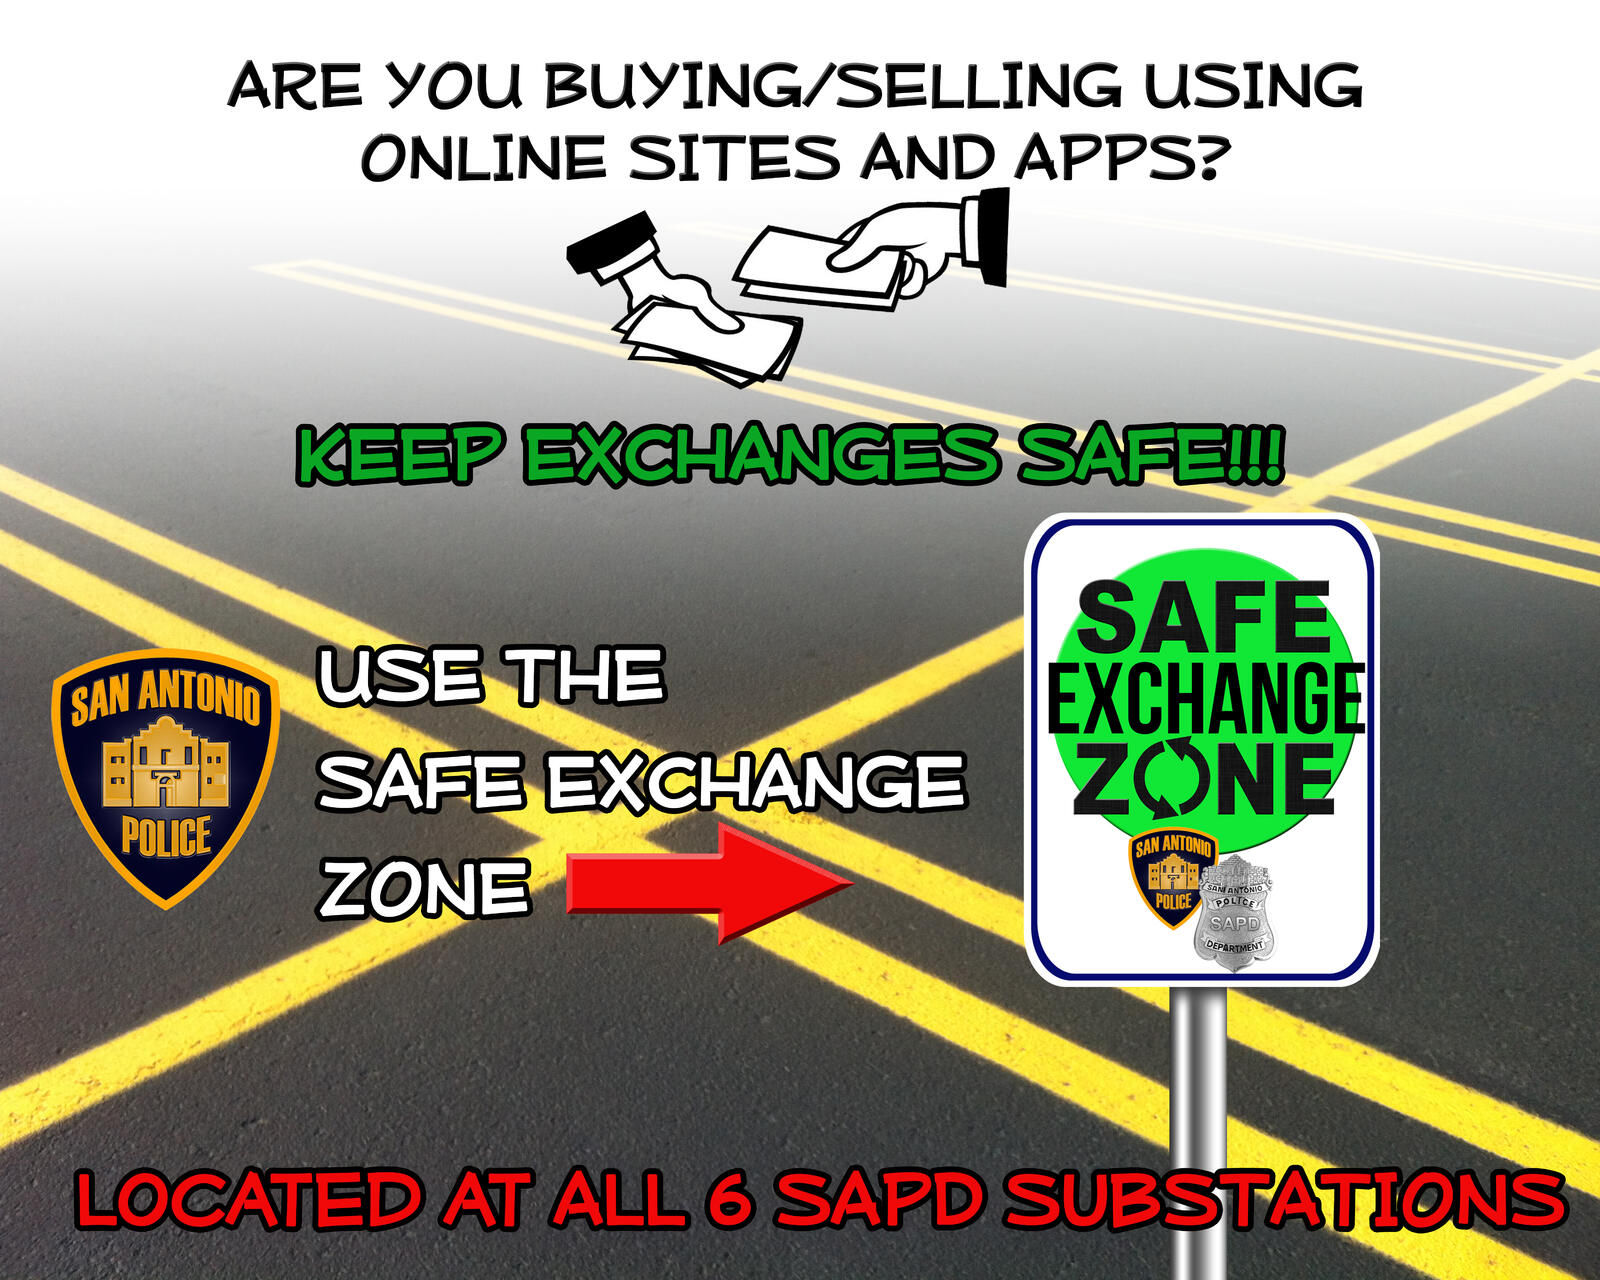 Safe Exchange Zones (San Antonio Police Department) &mdash